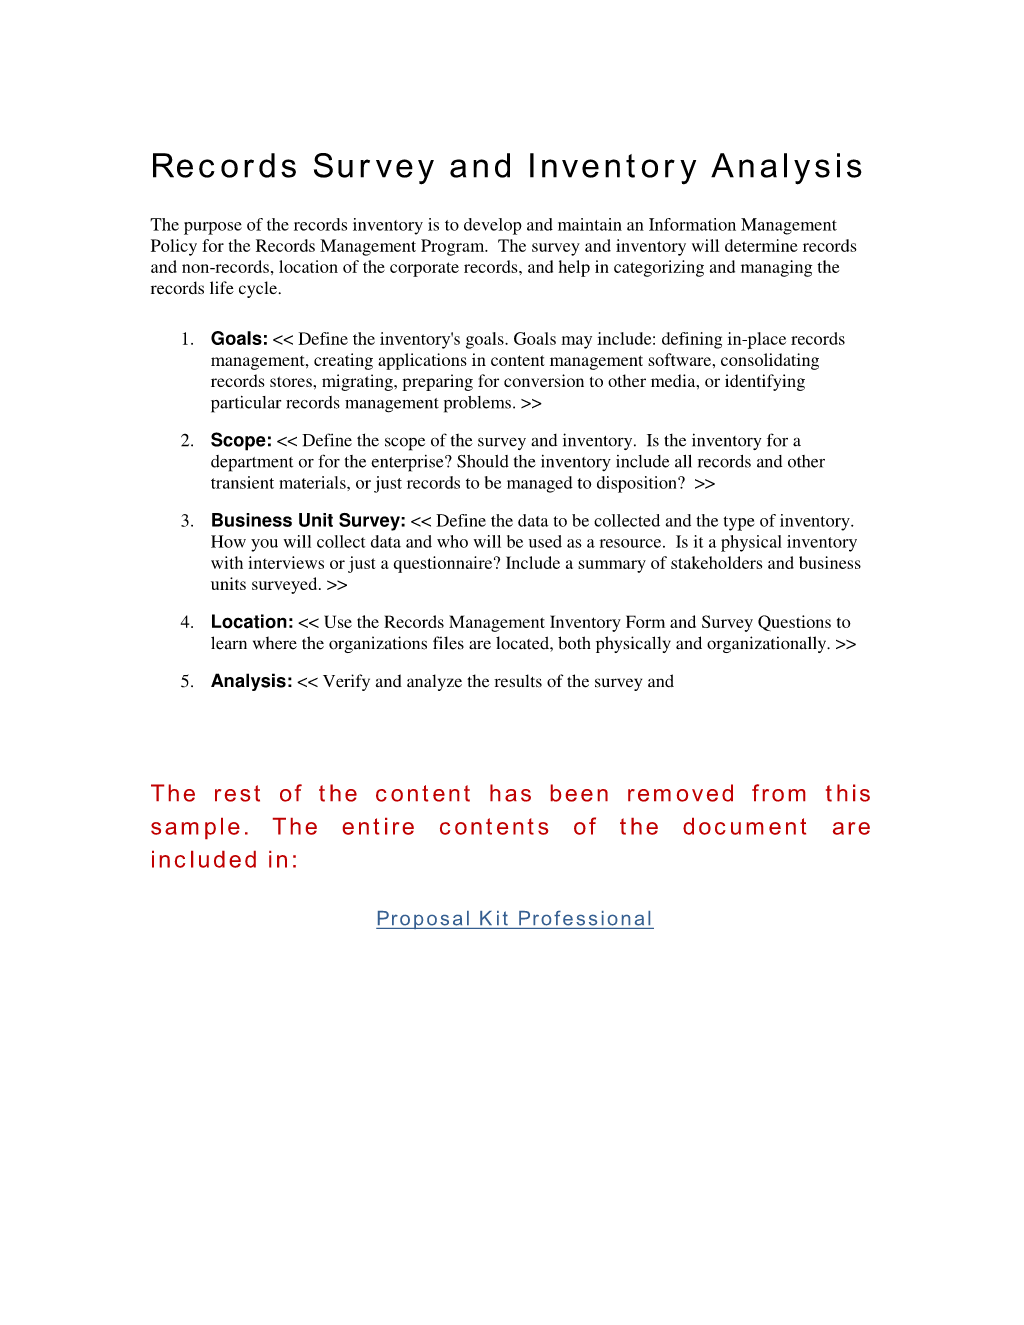 Sample Records Survey And Inventory Analysis  The Sample Records